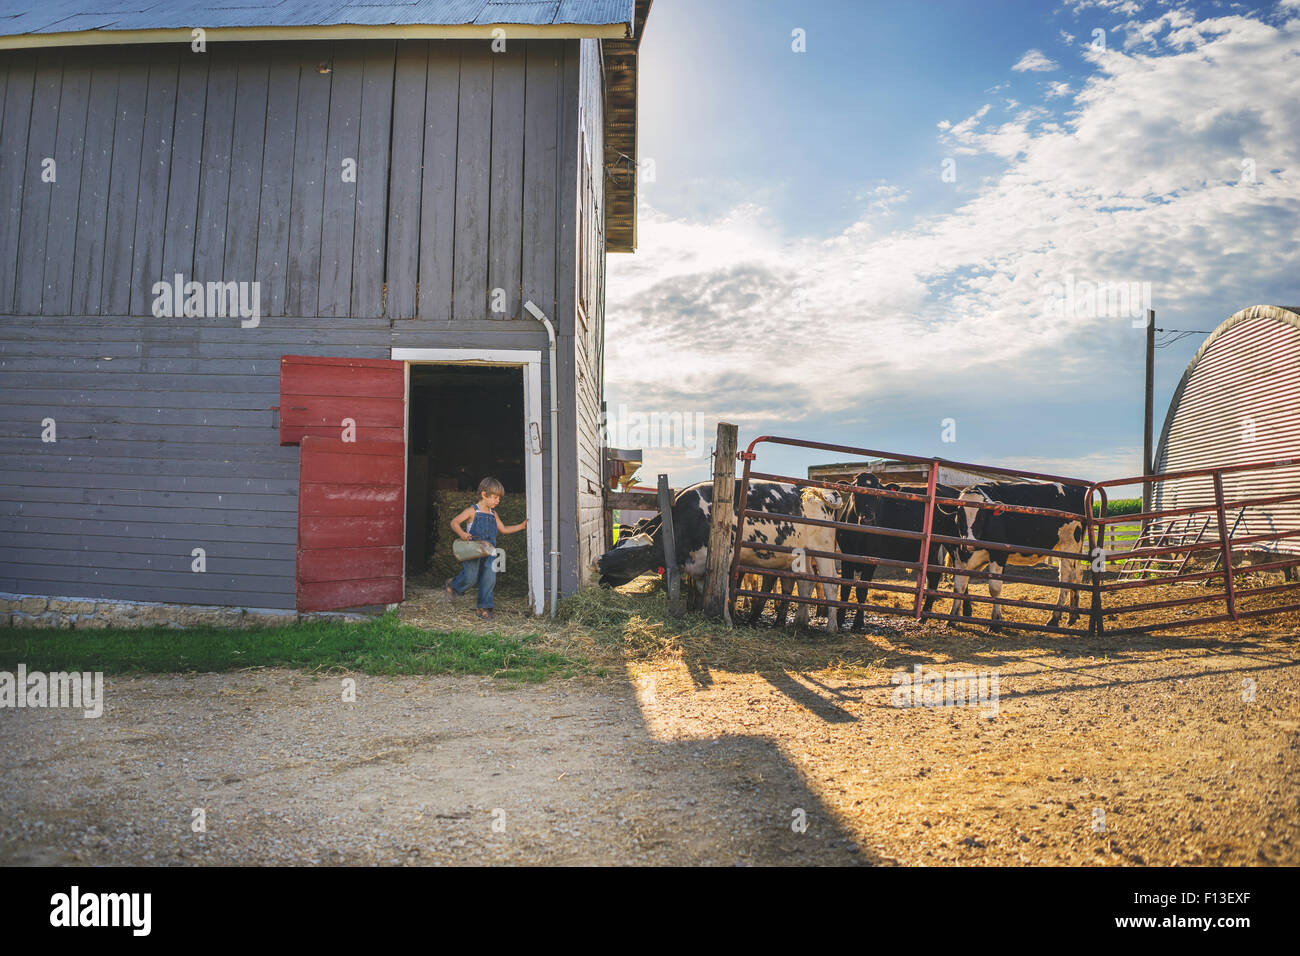 Boy coming out of a barn carrying a milk jug - Stock Image